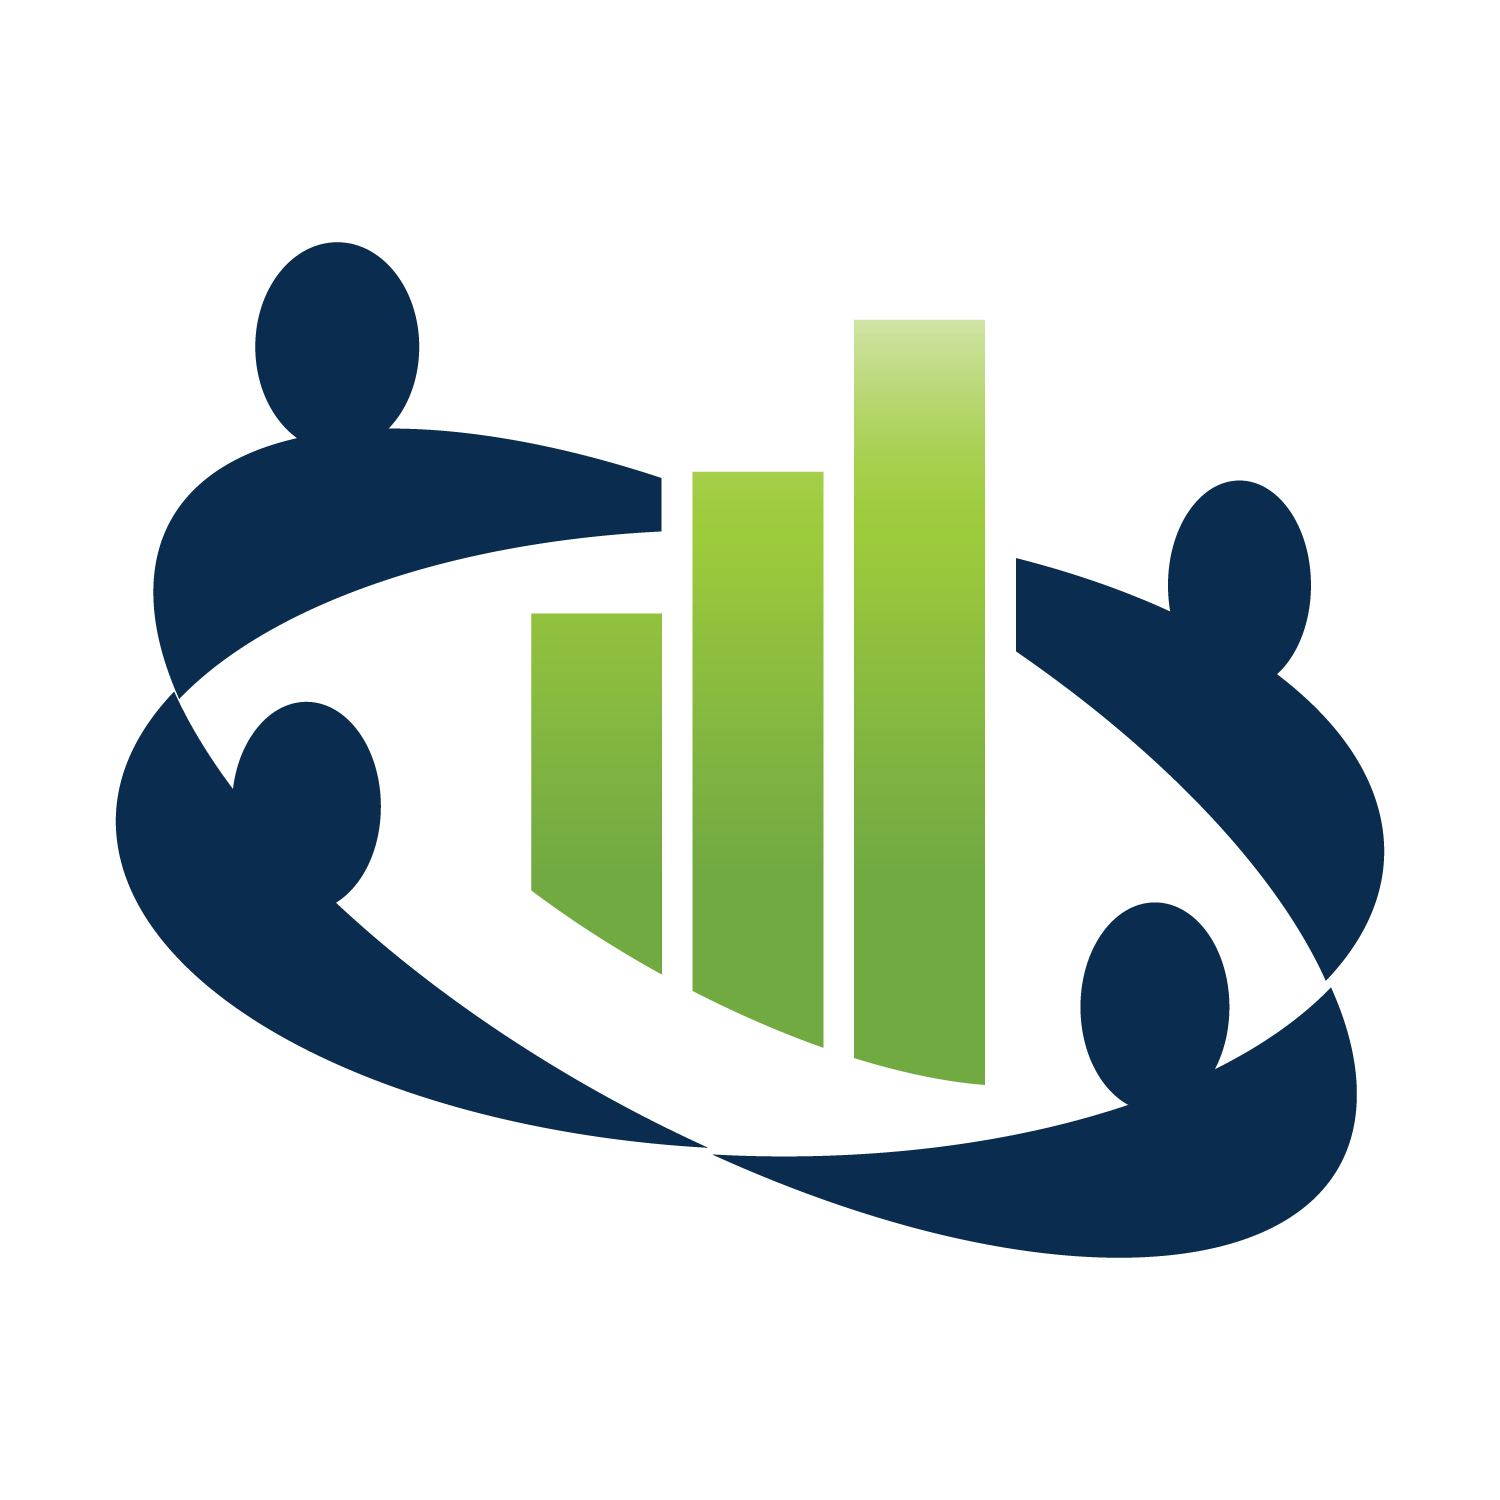 Png capital 5 » PNG Image.